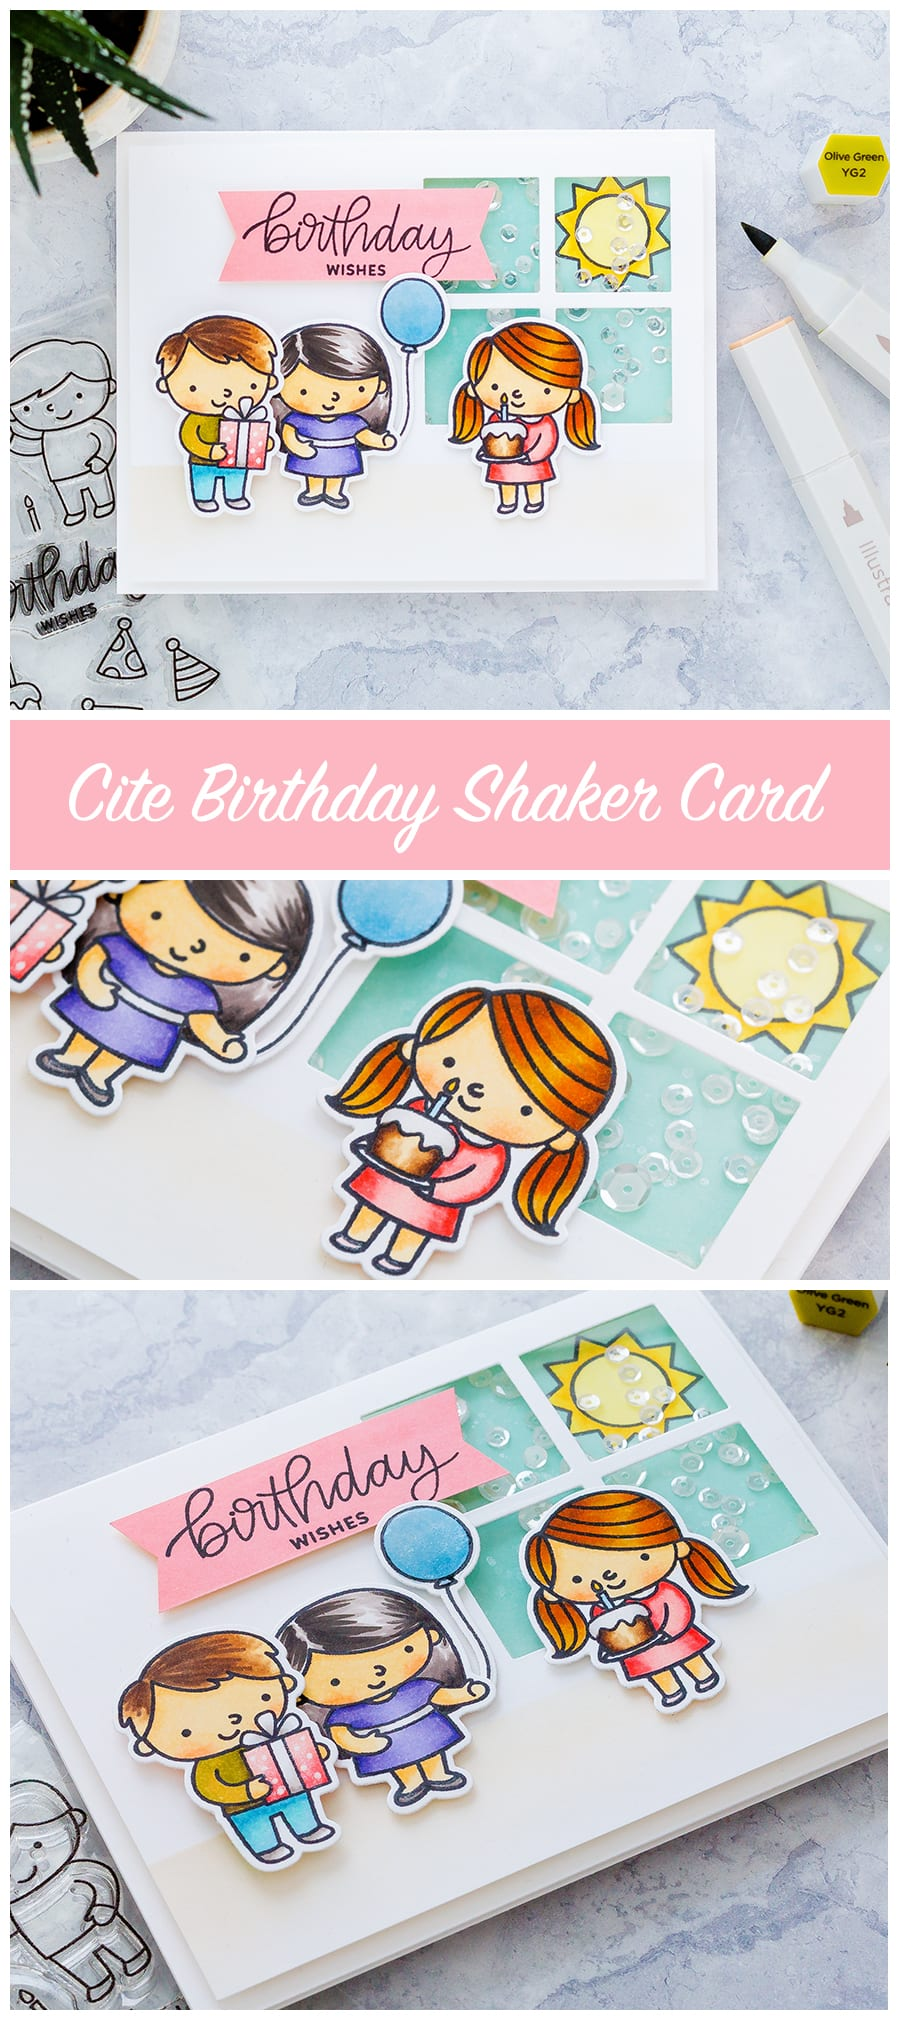 Birthday shaker handmade card by Debby Hughes using the new Birthday Friends set from Pretty Pink Posh. Find out more here: https://limedoodledesign.com/2018/01/shakin-it-up-for-pretty-pink-poshs-4th-birthday/